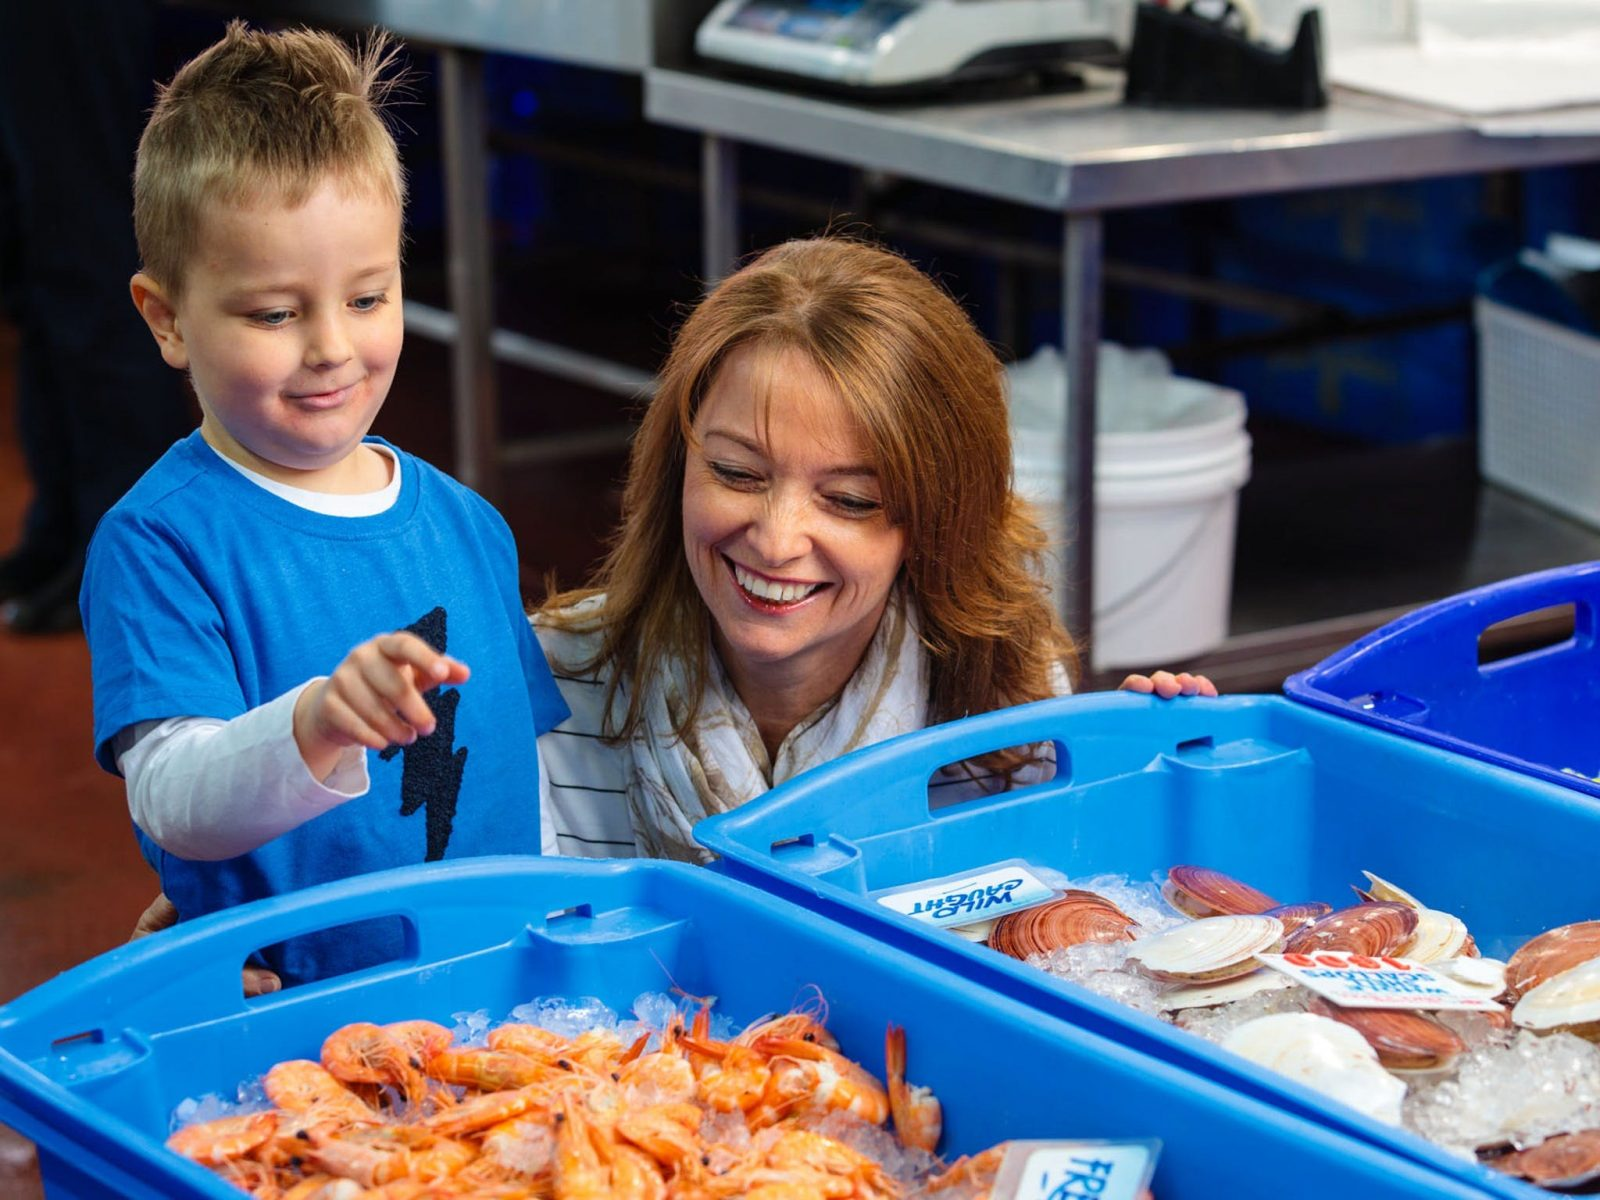 Mother and son looking at fresh seafood in buckets